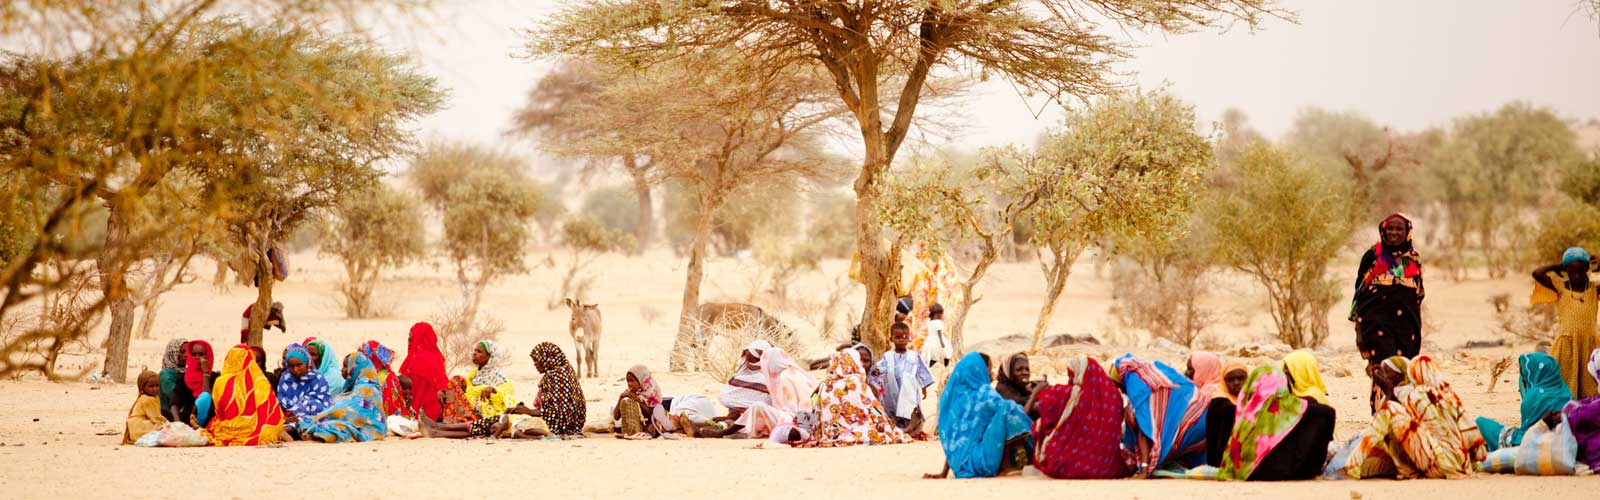 Women sitting under trees during a drought in Chad